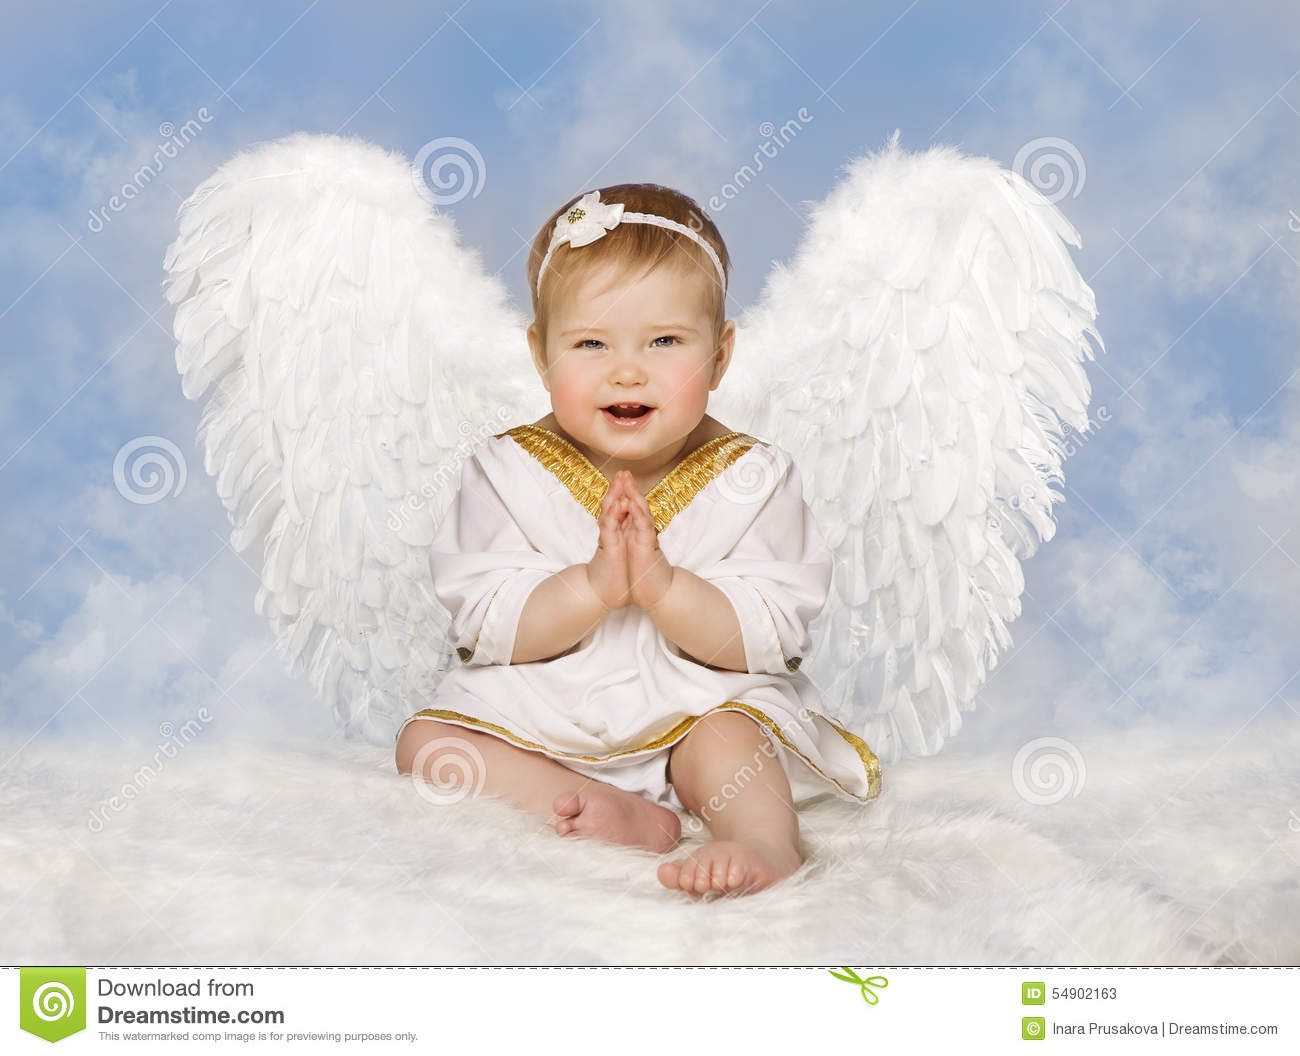 Angel Baby Wings Angelic Cupid Toddler Kid Clasped Hands Folded New Born Child Sitting